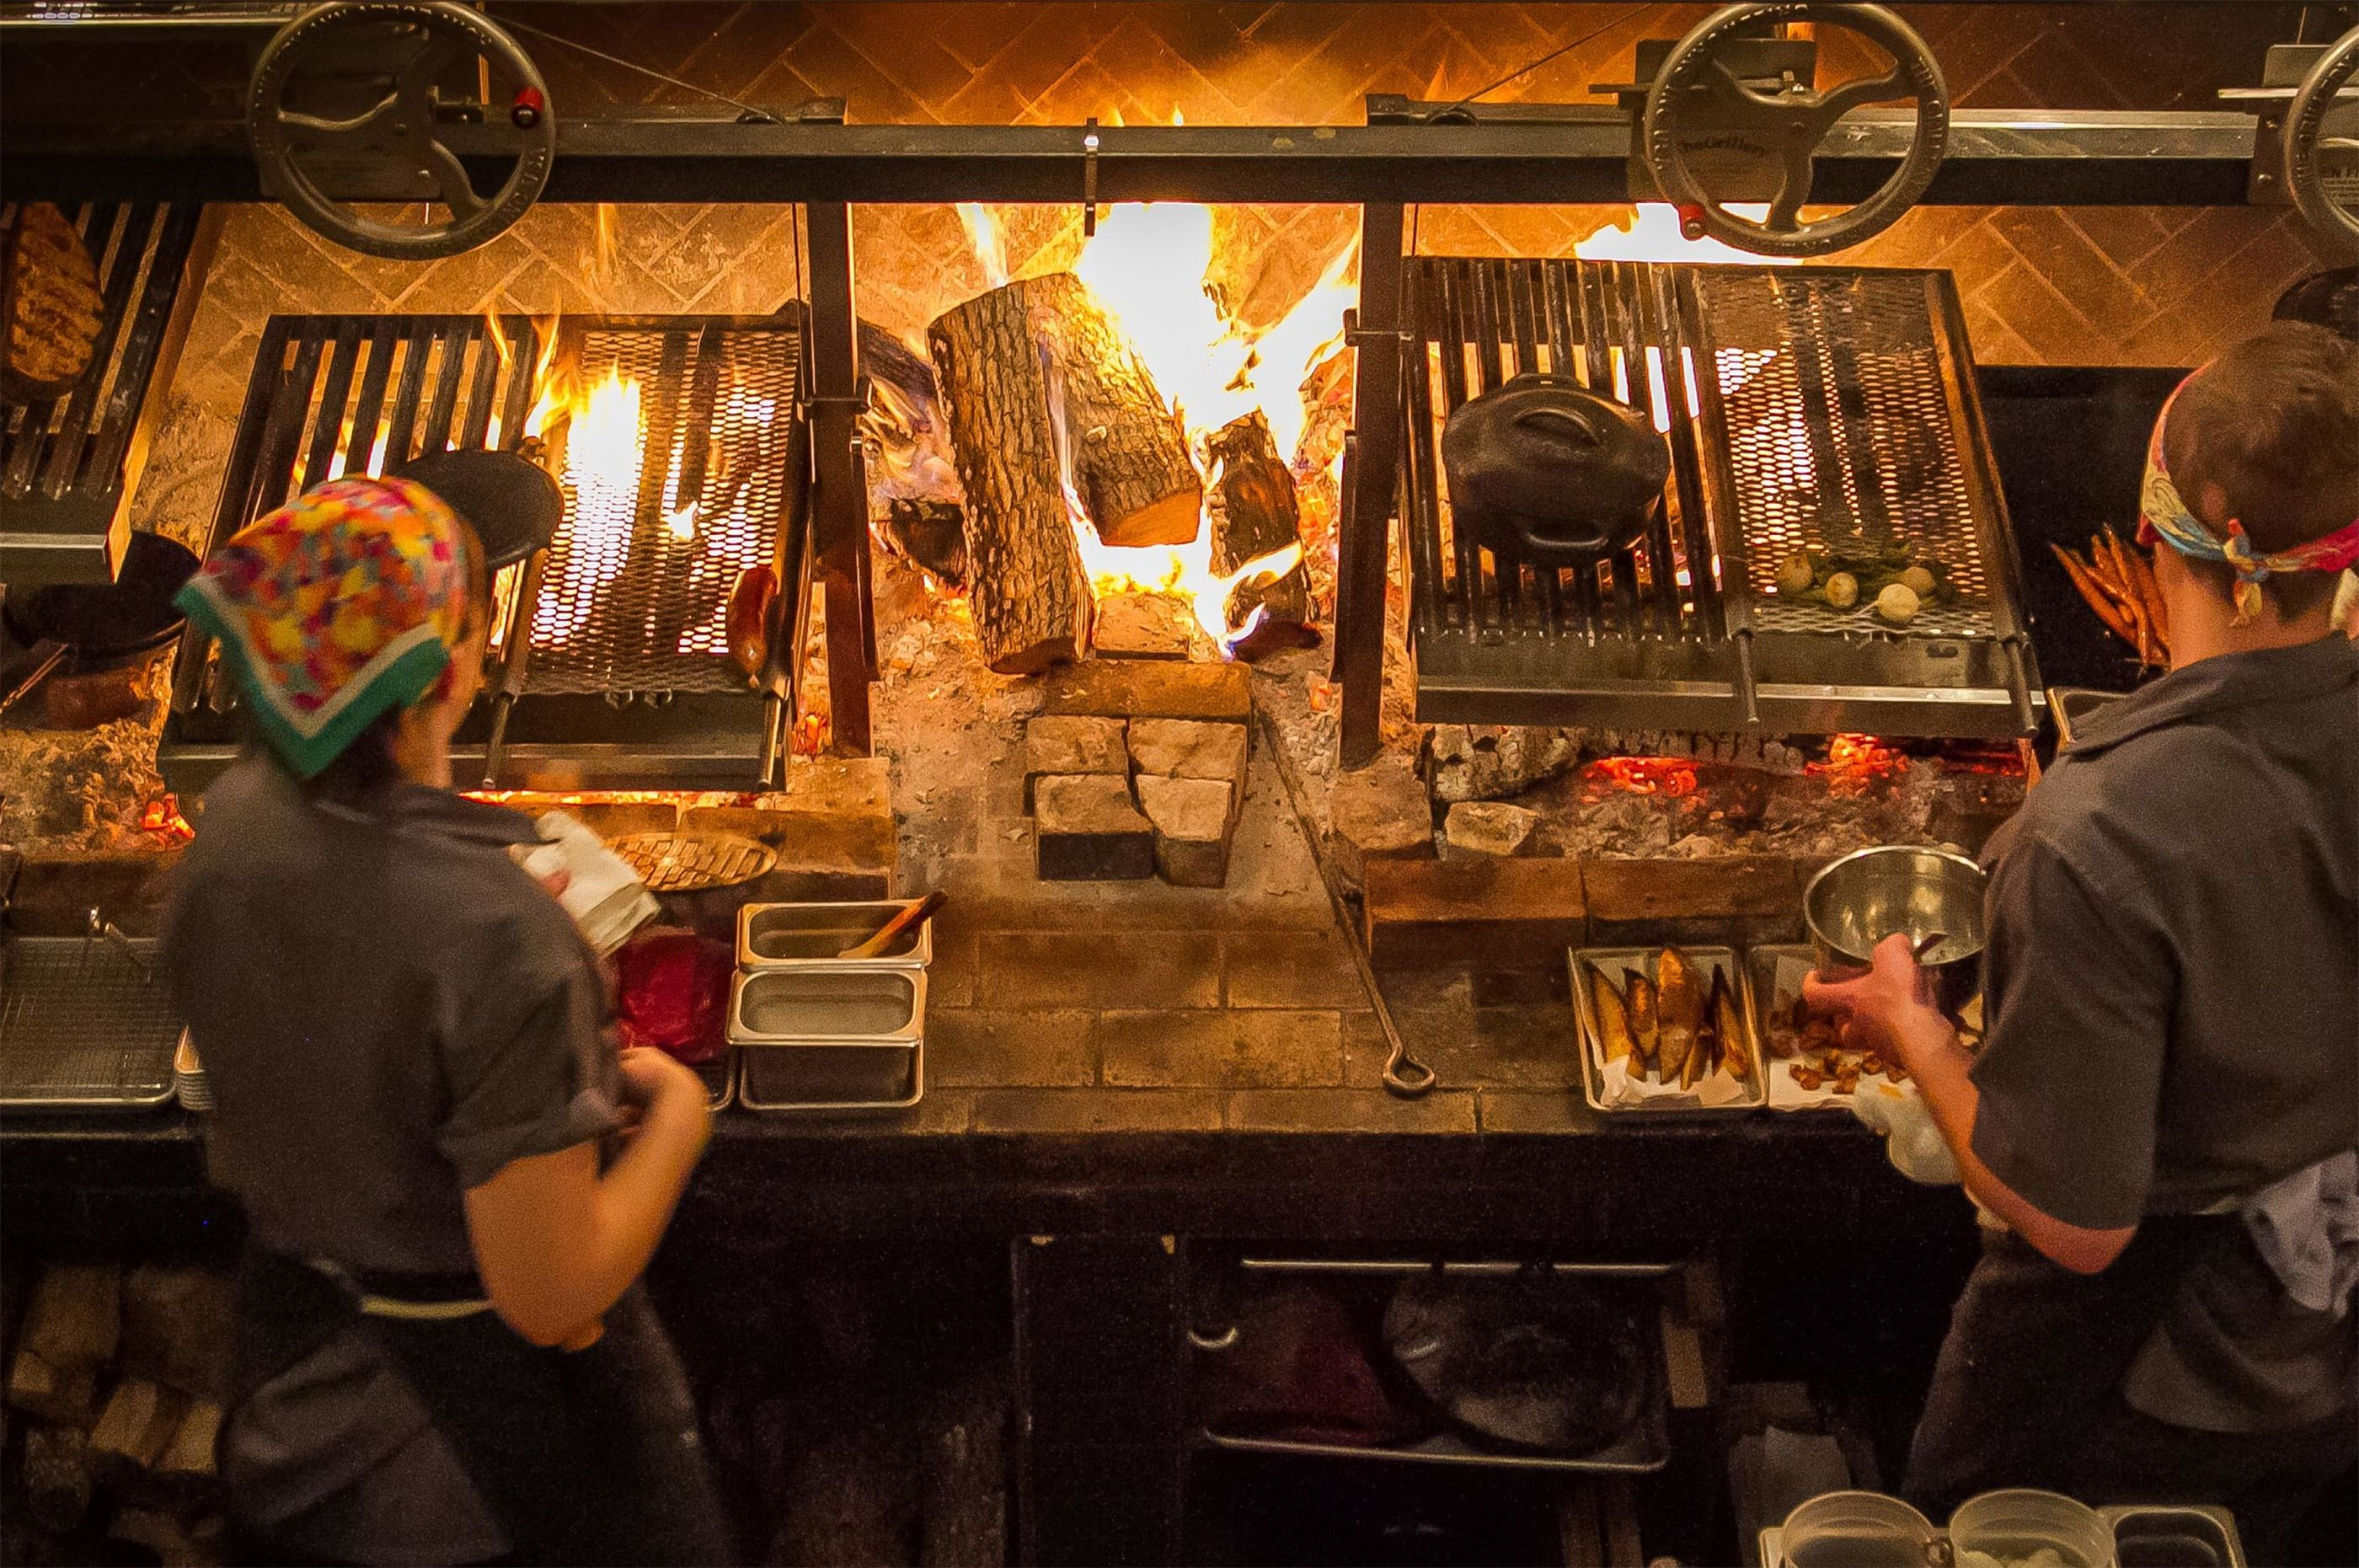 Restaurant Kitchen Work Stations the cult-favorite wood-fired grills taking the restaurant world